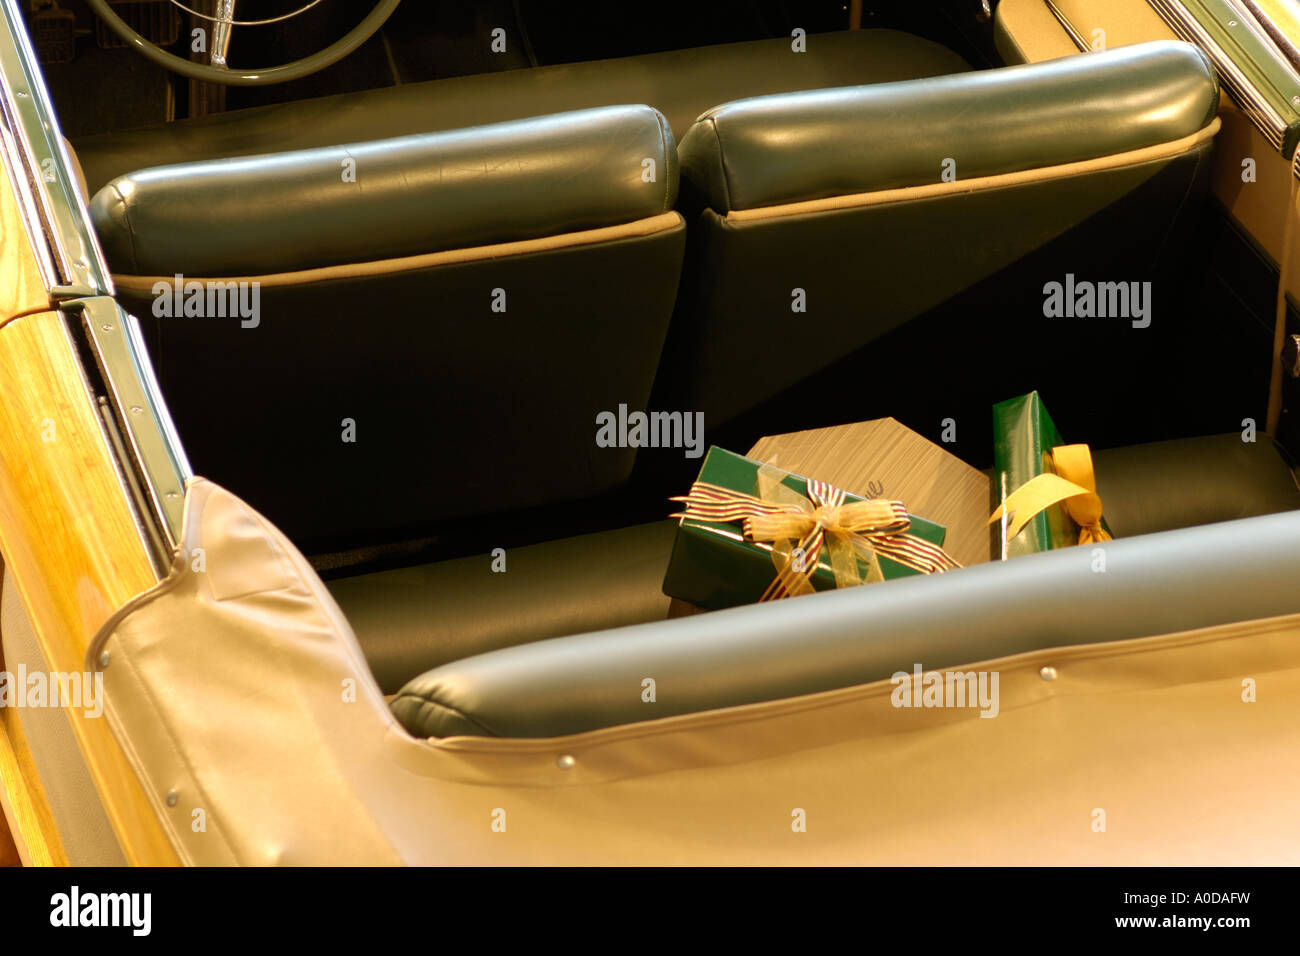 hight resolution of interior of a 1948 chrysler town and country convertible on display at the walter p chrysler